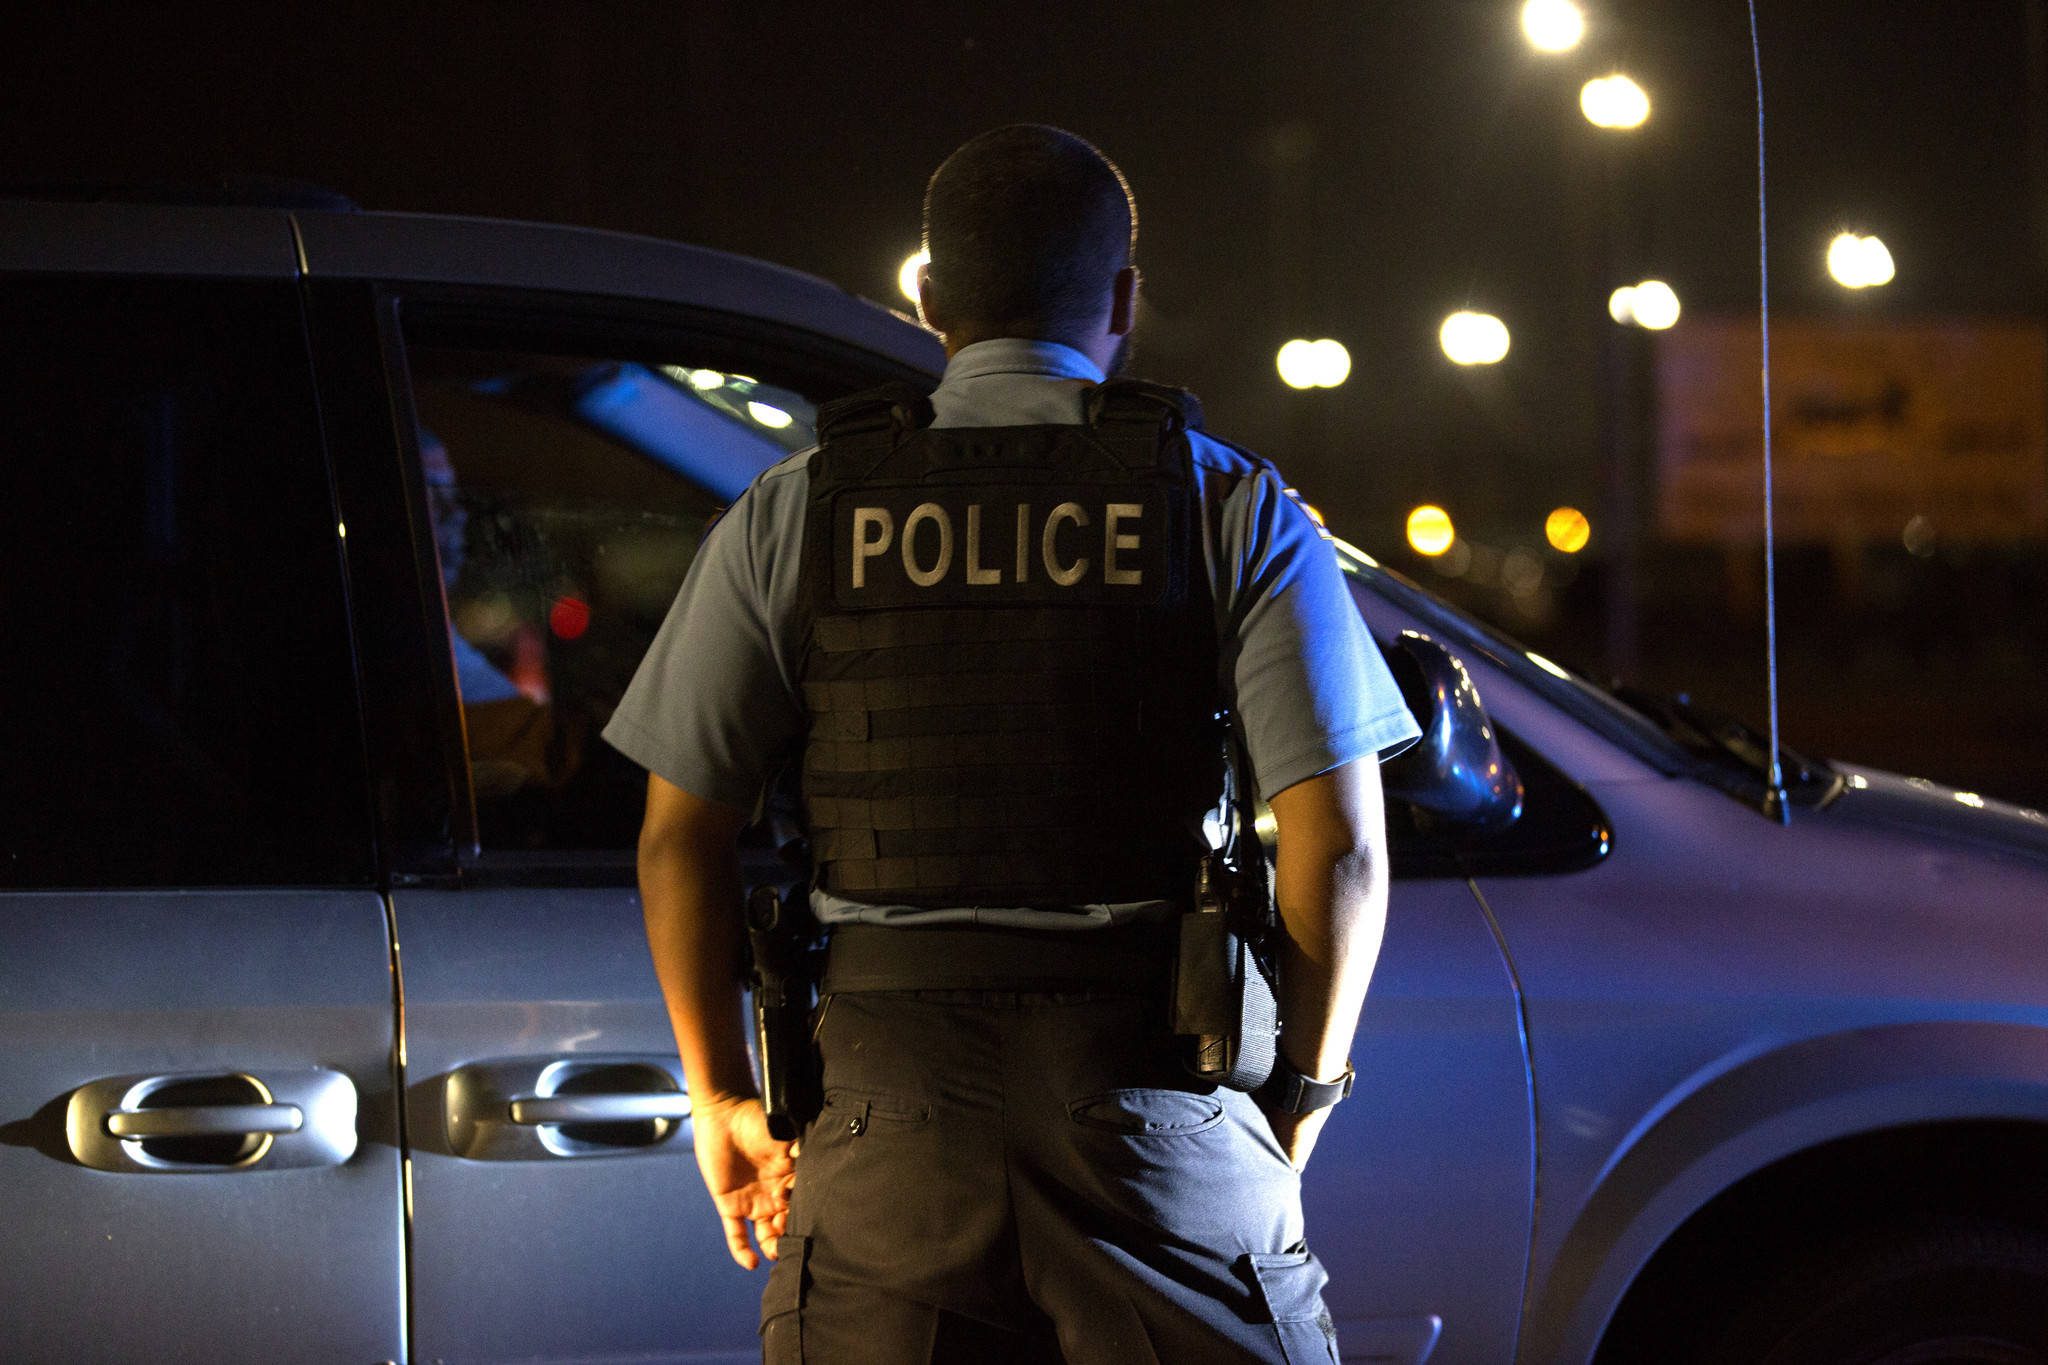 """narrative police frisk search report It was the ppd's way of telling its own story about stop-and-frisk  refer to  randomly stopping people and arbitrarily searching them without cause or reason ,"""" the ppd narration reads  deeply sourced community reporting."""